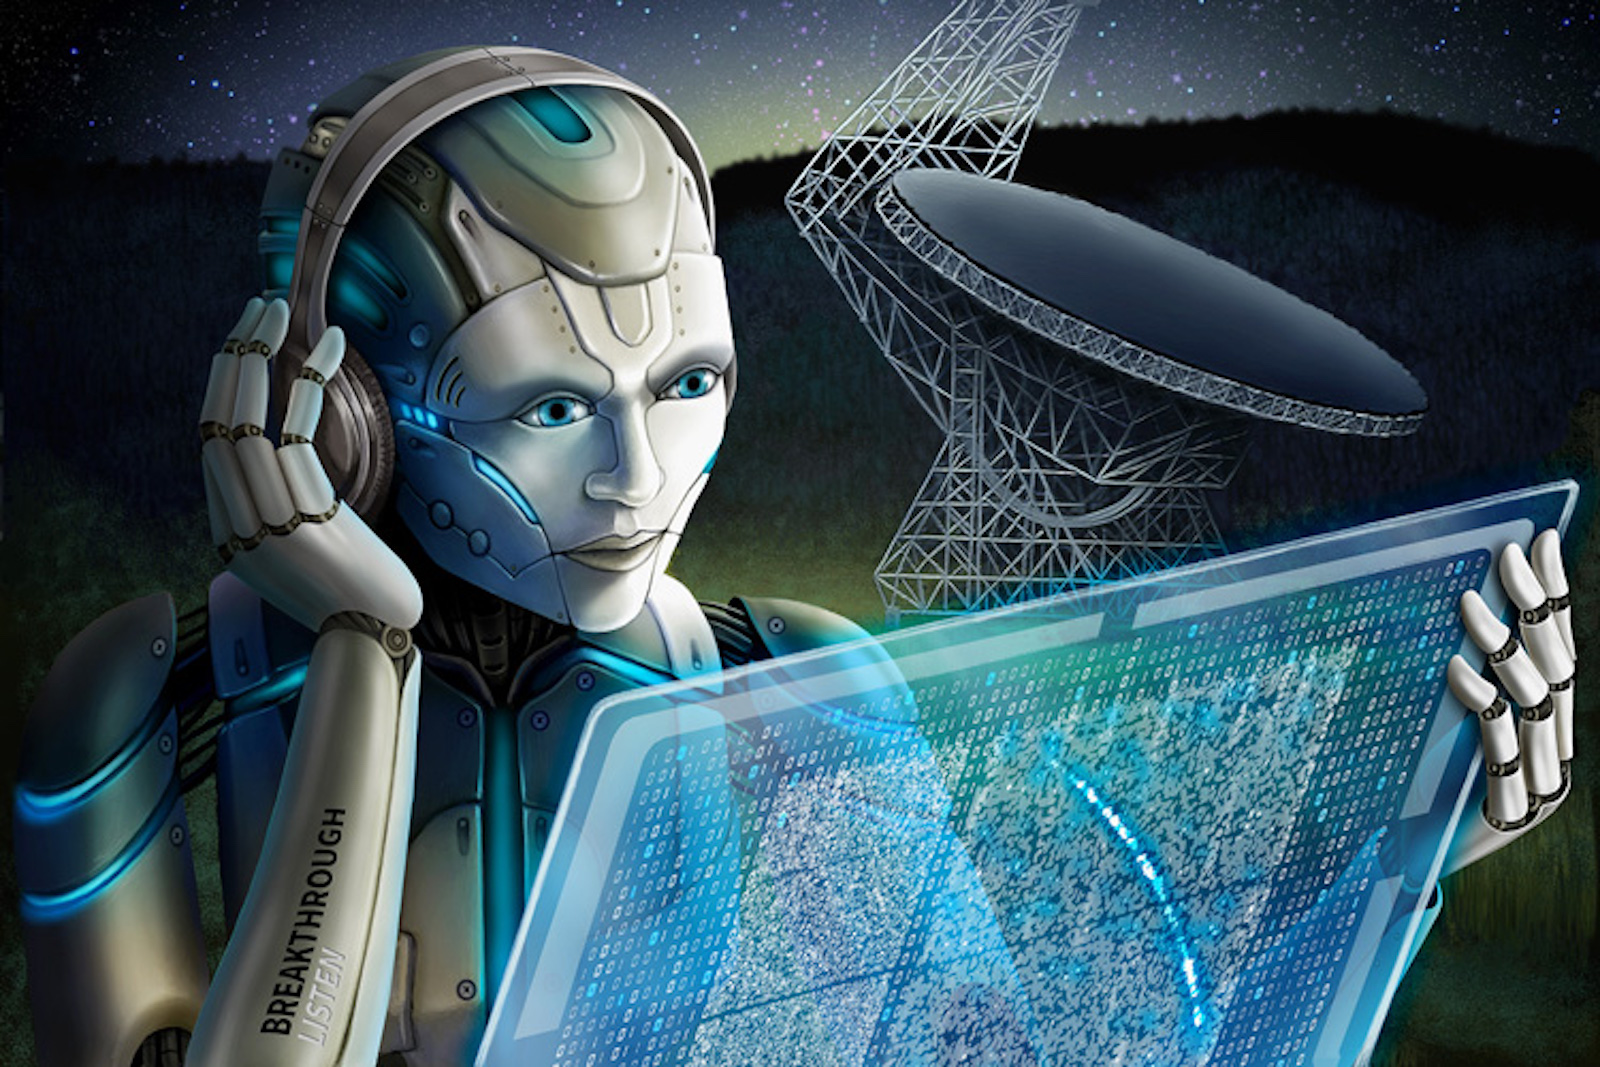 Searching the SETI haystack